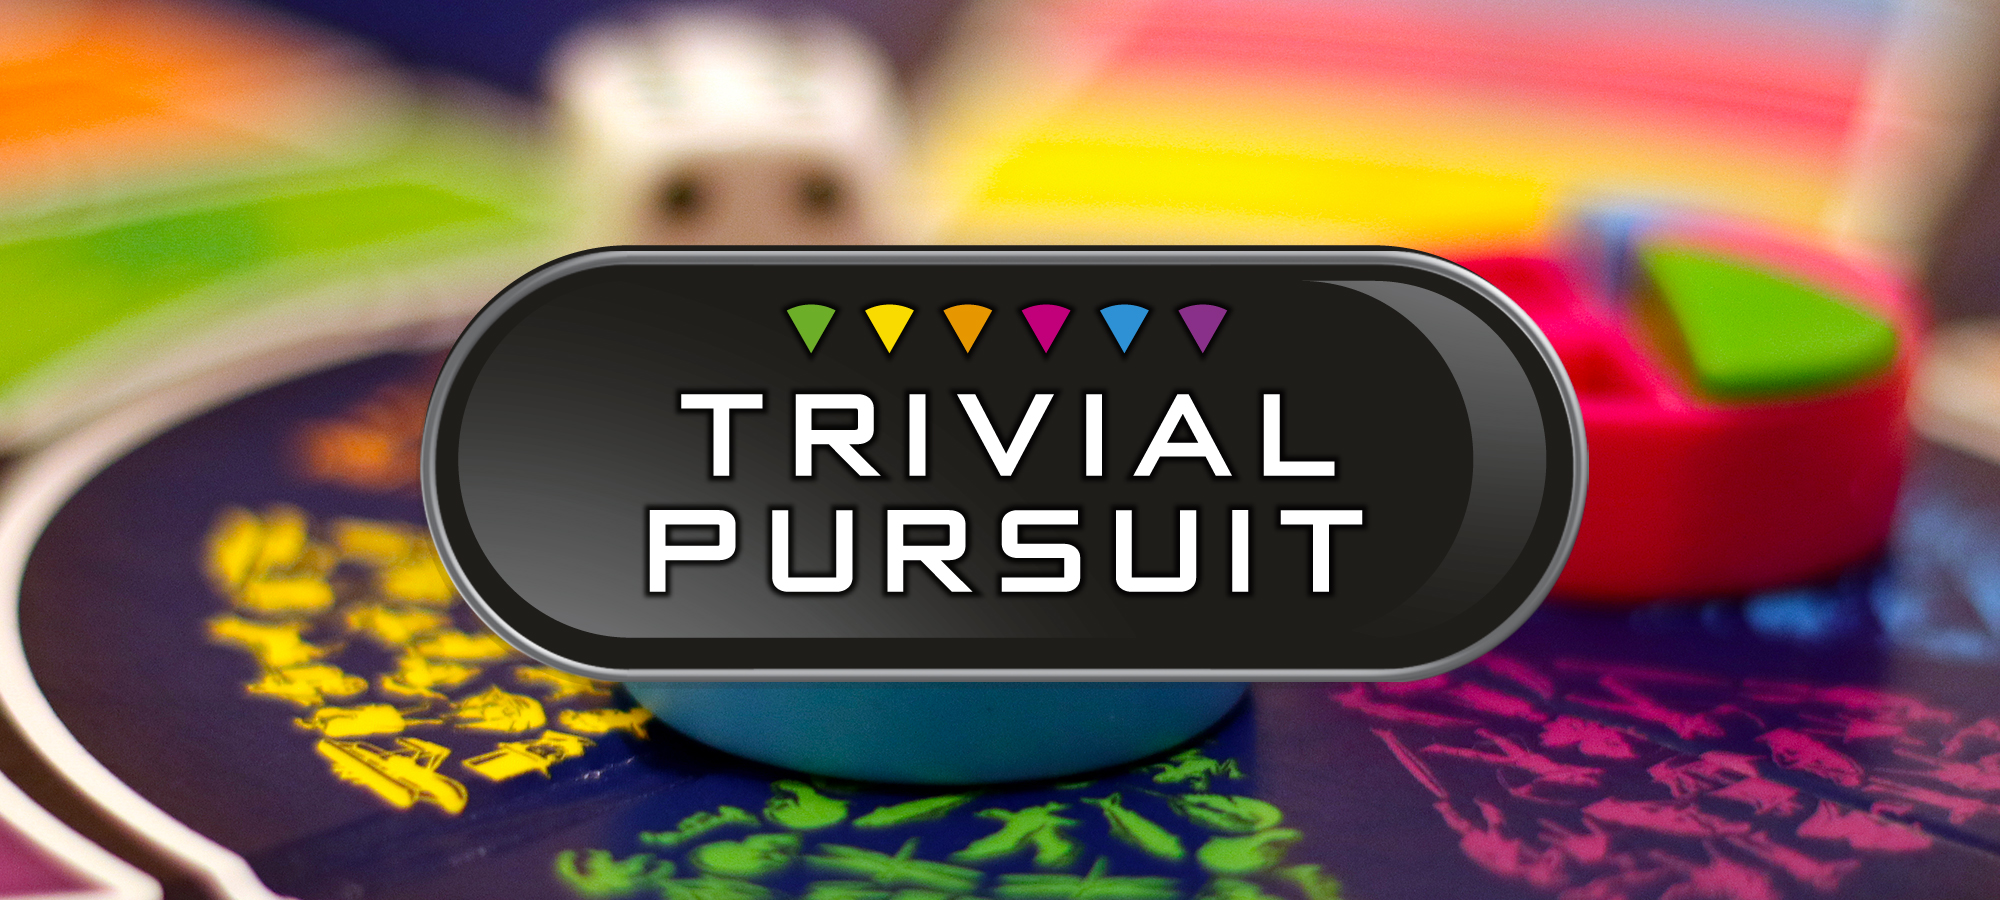 Trivial Pursuit Coorpacademy